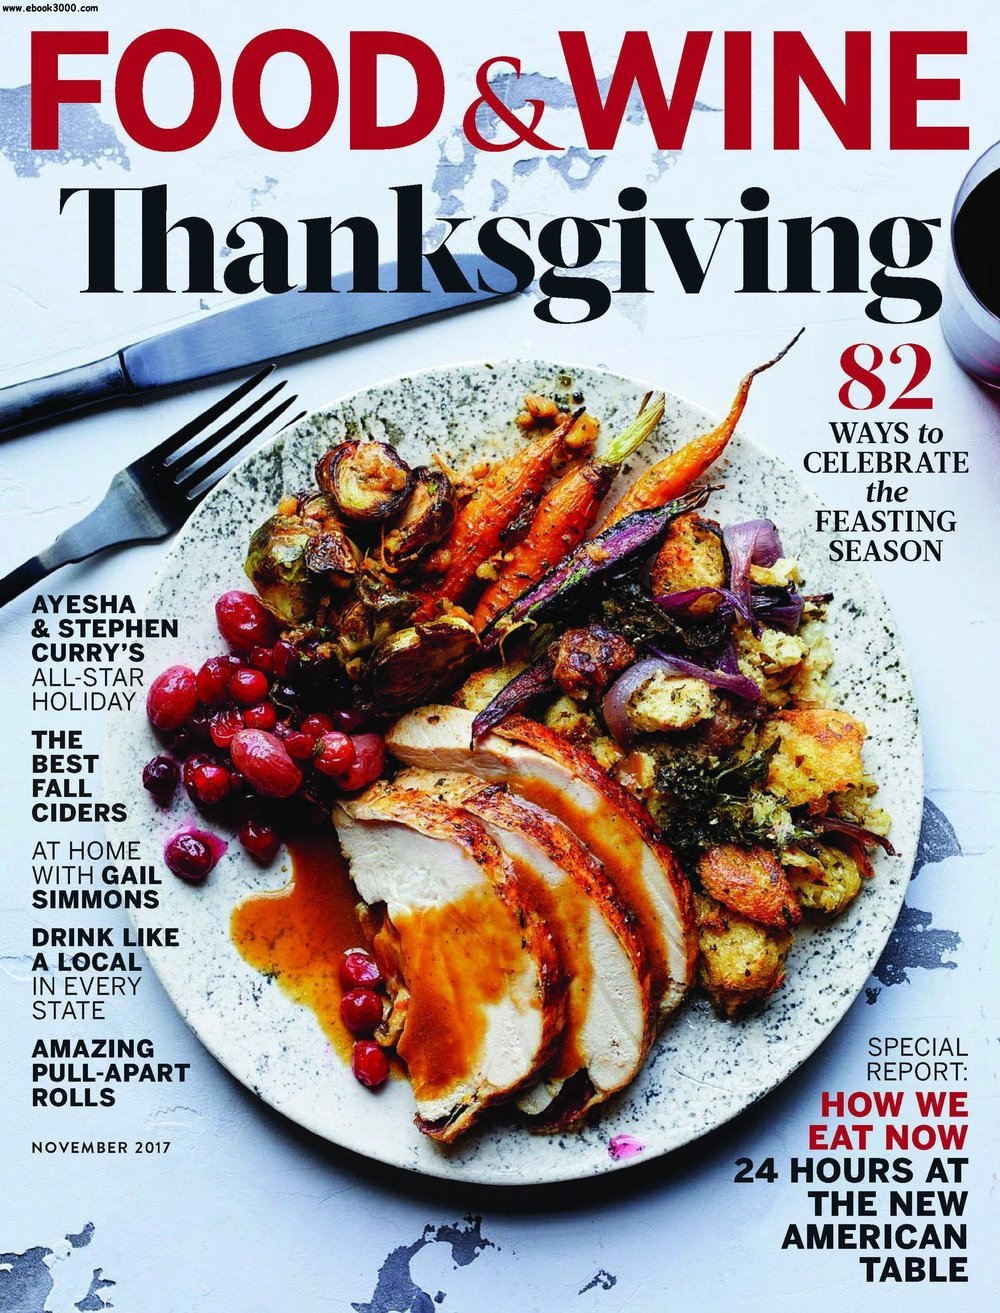 So....a thing happened! A BIG THING!  FOOD AND WINE  Magazine released a special report in their Thanksgiving issue that highlighted 24 hours at the New American Table.   BIG NEWS   Dovecote Cafe  was highlighted and so was my delicious Savory Kale Salad recipe that I made exclusively for readers and patrons of our cafe! Super excited to read this issue and so flattered to be amongst some unconventional heavy hitters in the culinary world, like  Ayesha Curry !!!  Click the image below for the recipe or swing by the cafe to have it prepared by one of our amazing chefs!